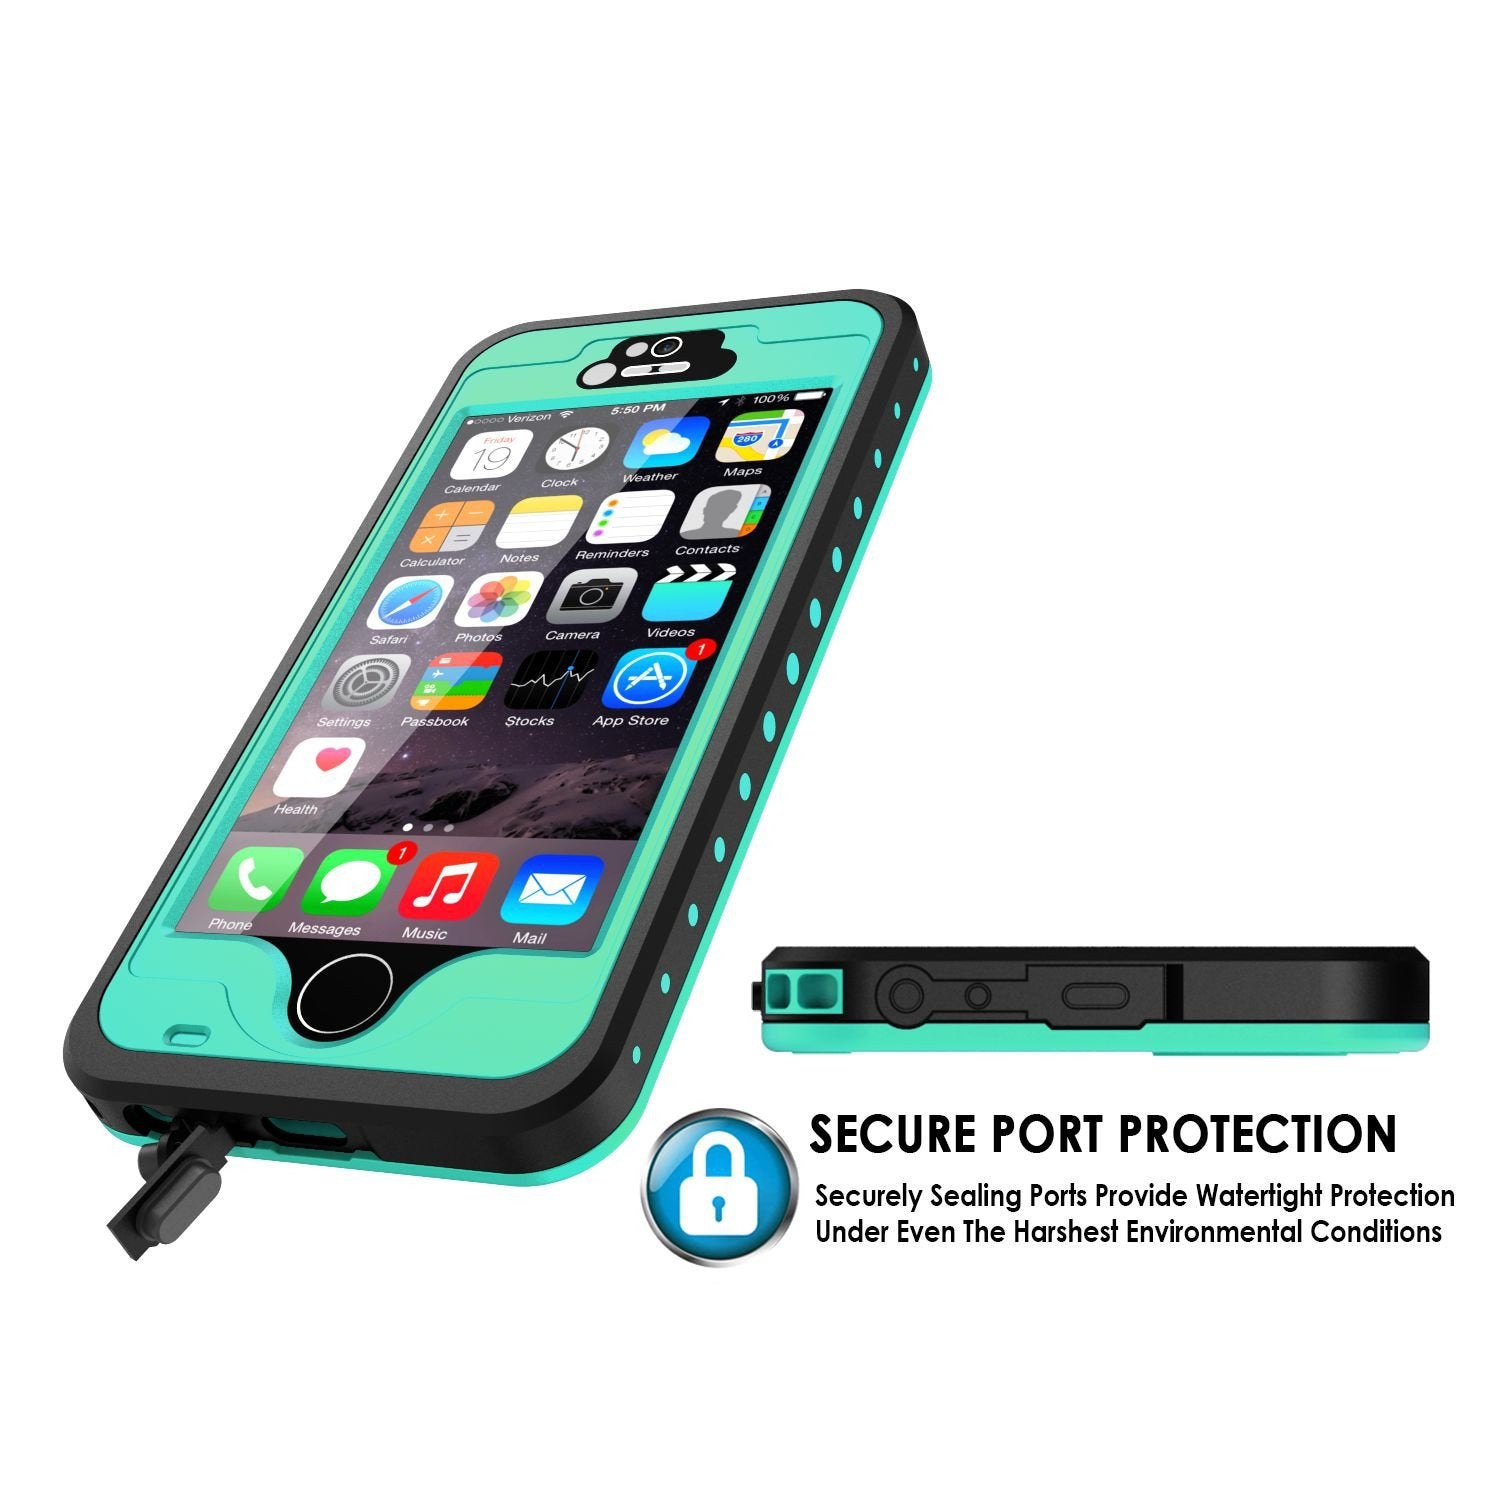 iPhone SE/5S/5 Waterproof Case, PunkCase StudStar Teal Shock/Dirt/Snow Proof | Lifetime Warranty